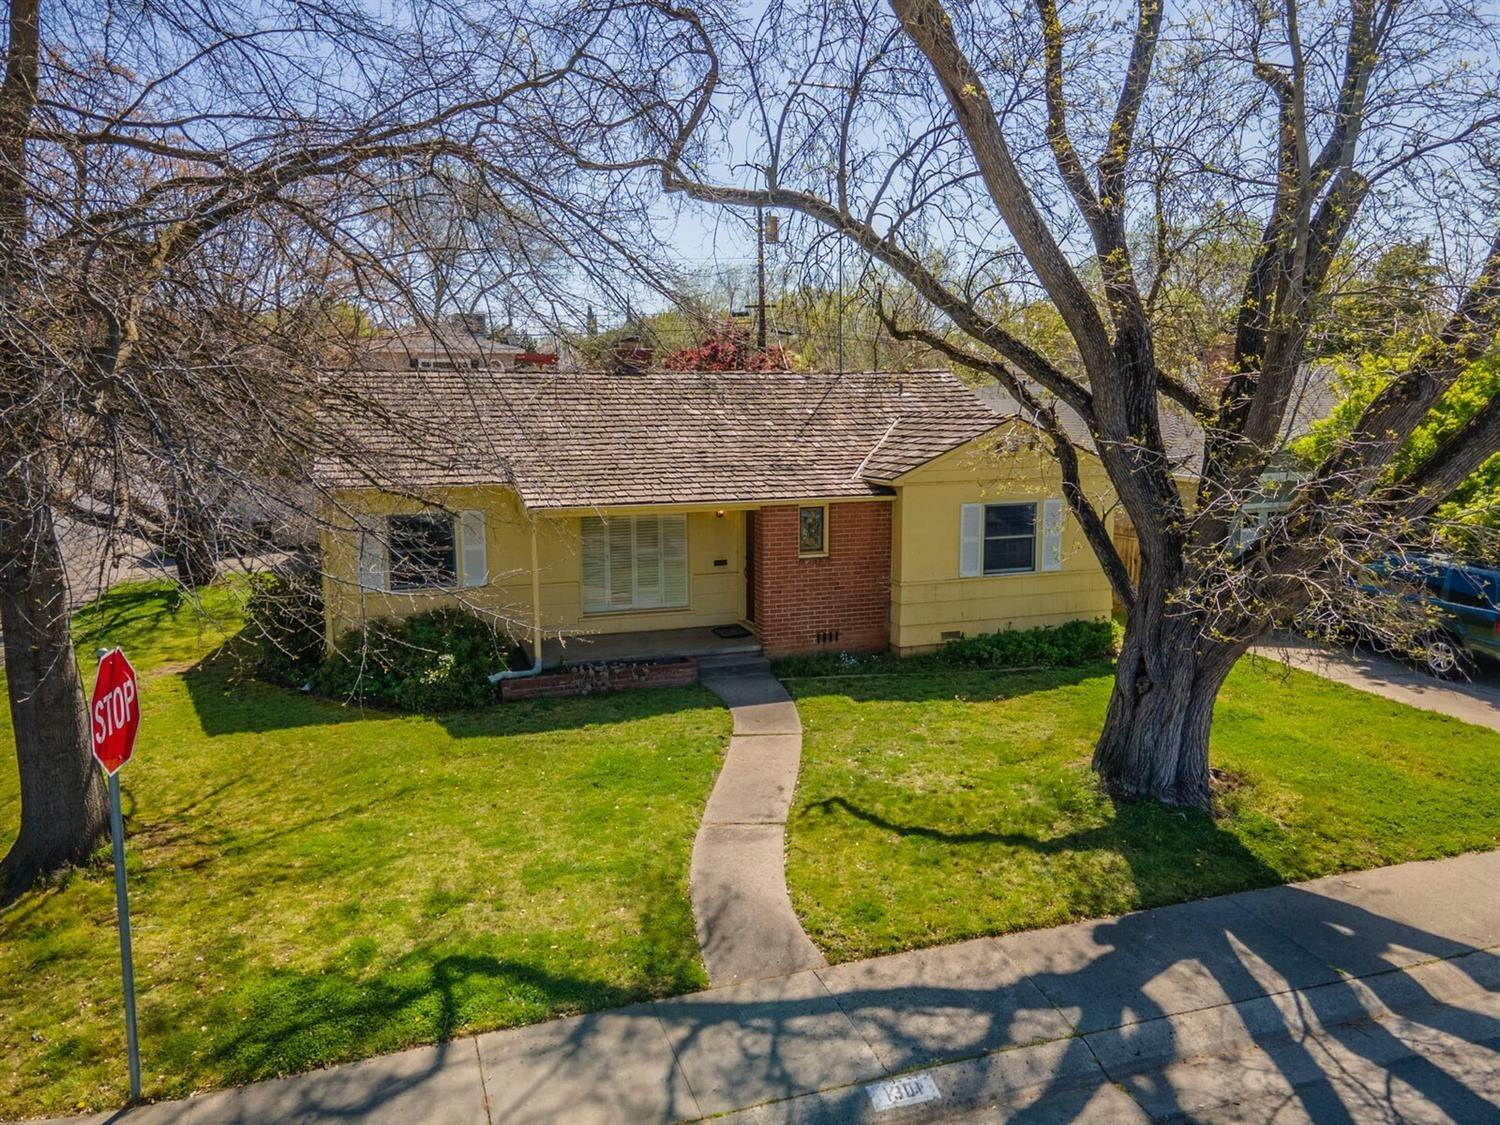 Single Family Homes for Active at 1301 Louis Way Sacramento, California 95819 United States